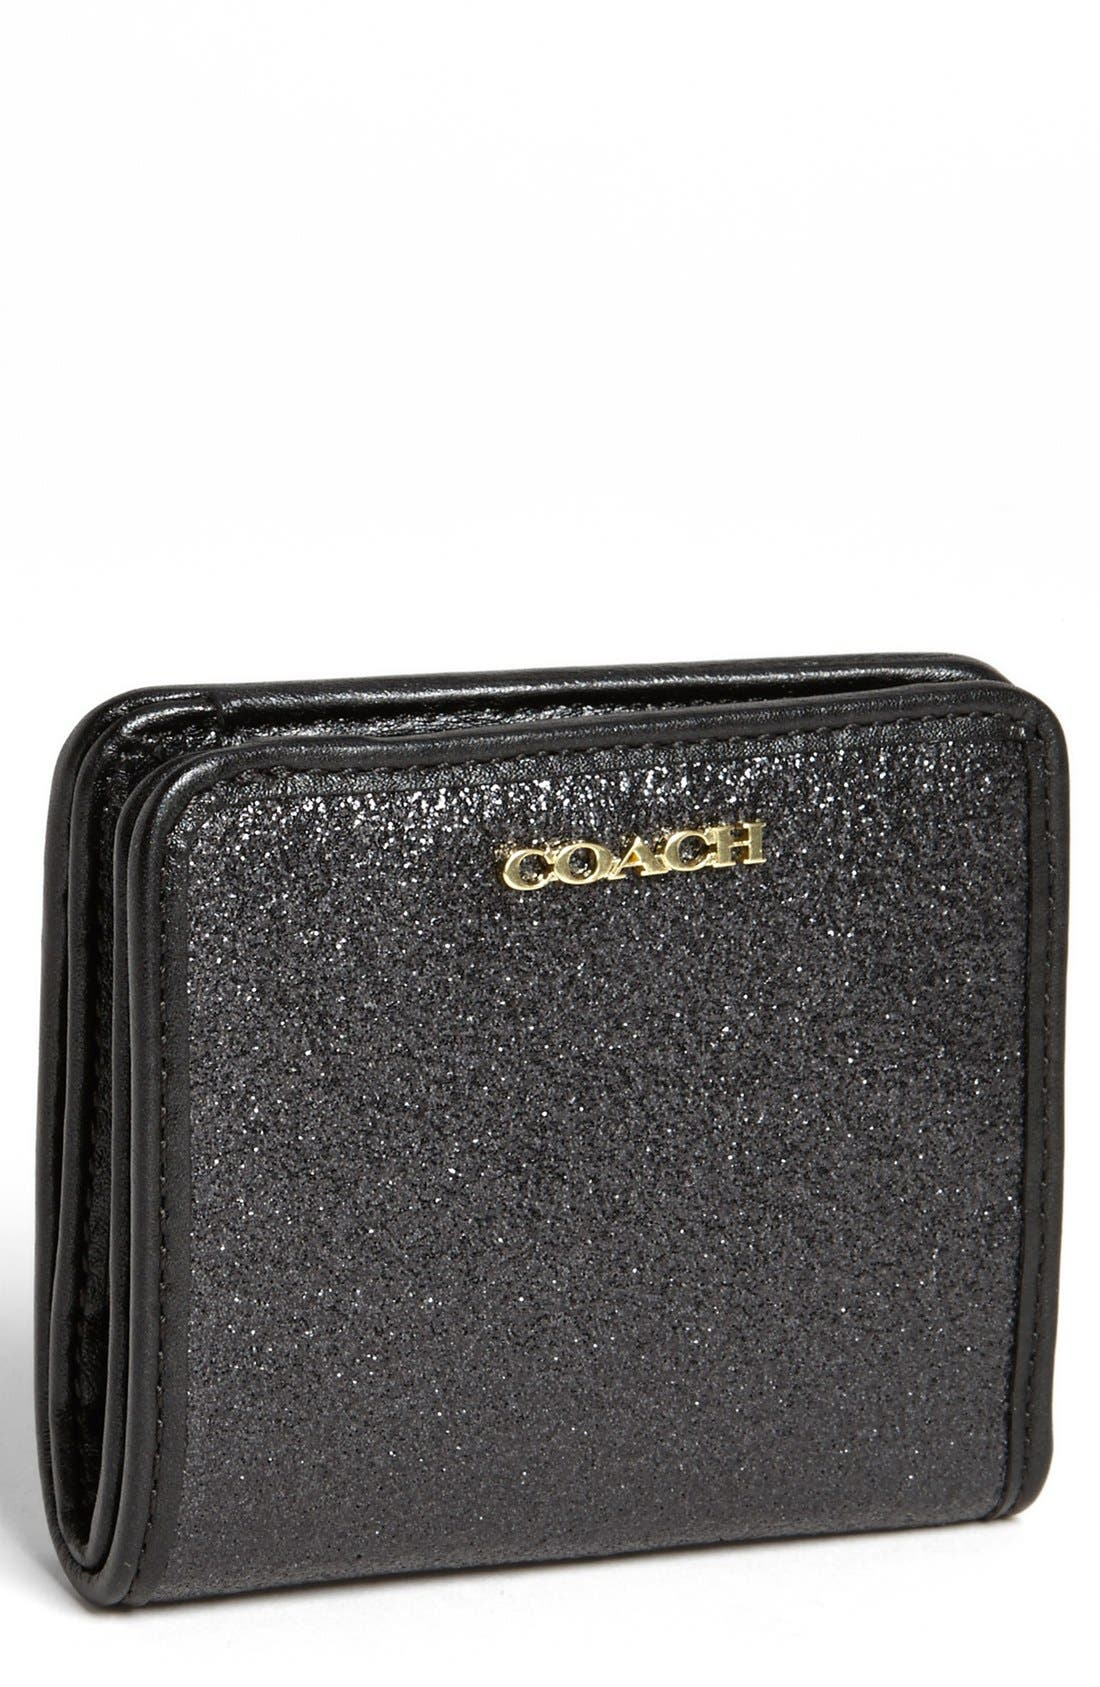 COACH,                             'Glitter' Bifold Wallet,                             Main thumbnail 1, color,                             012